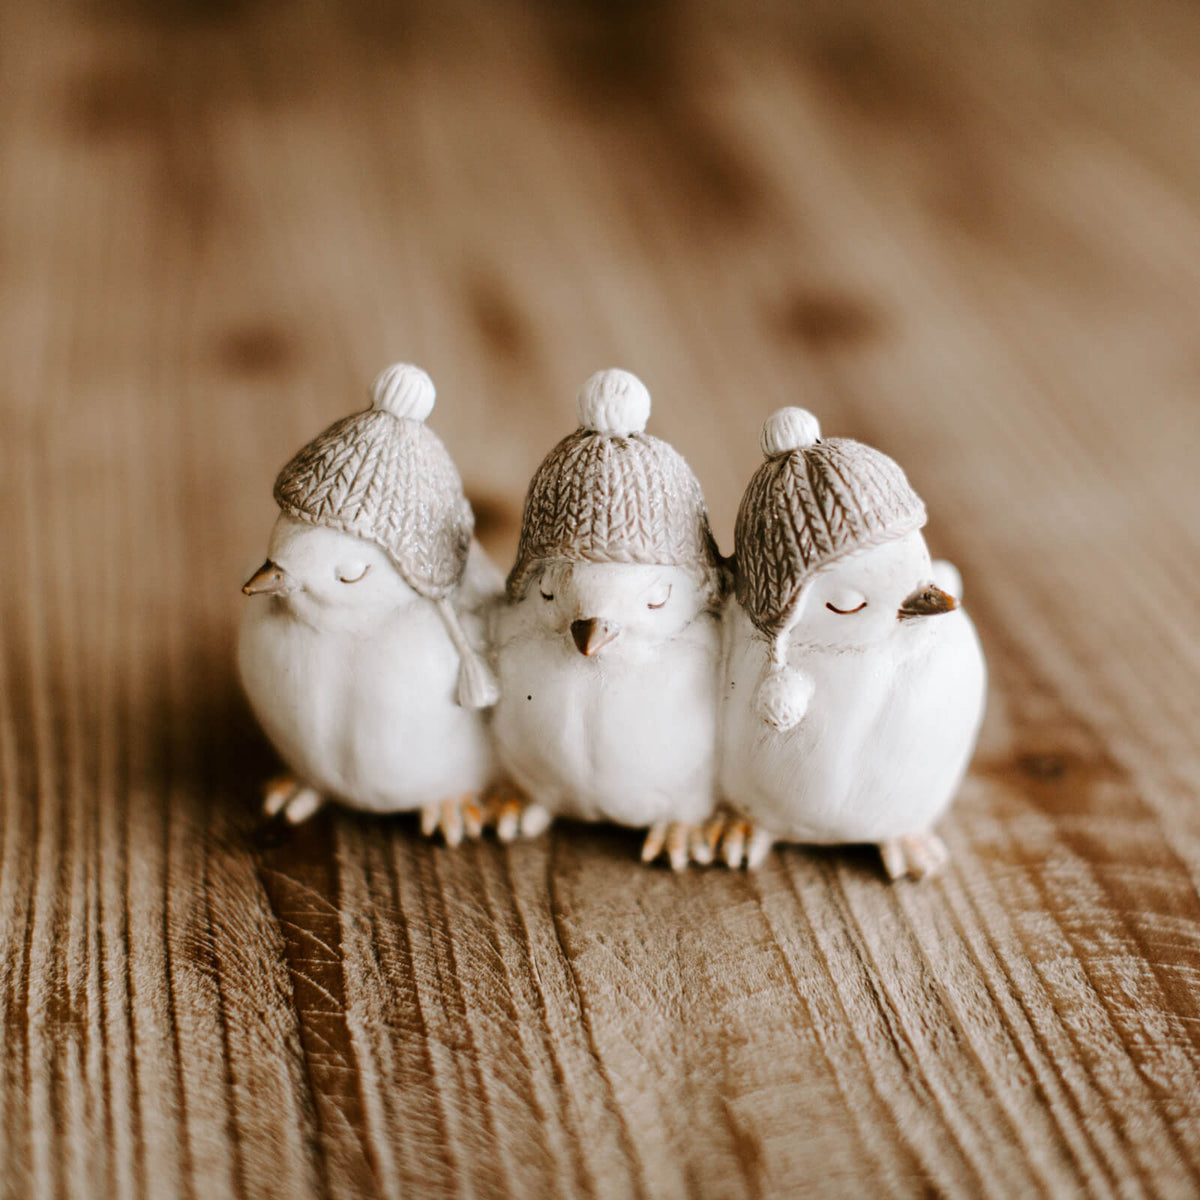 A figurine featuring 3 little white birds in winter stocking caps, with eyes closed